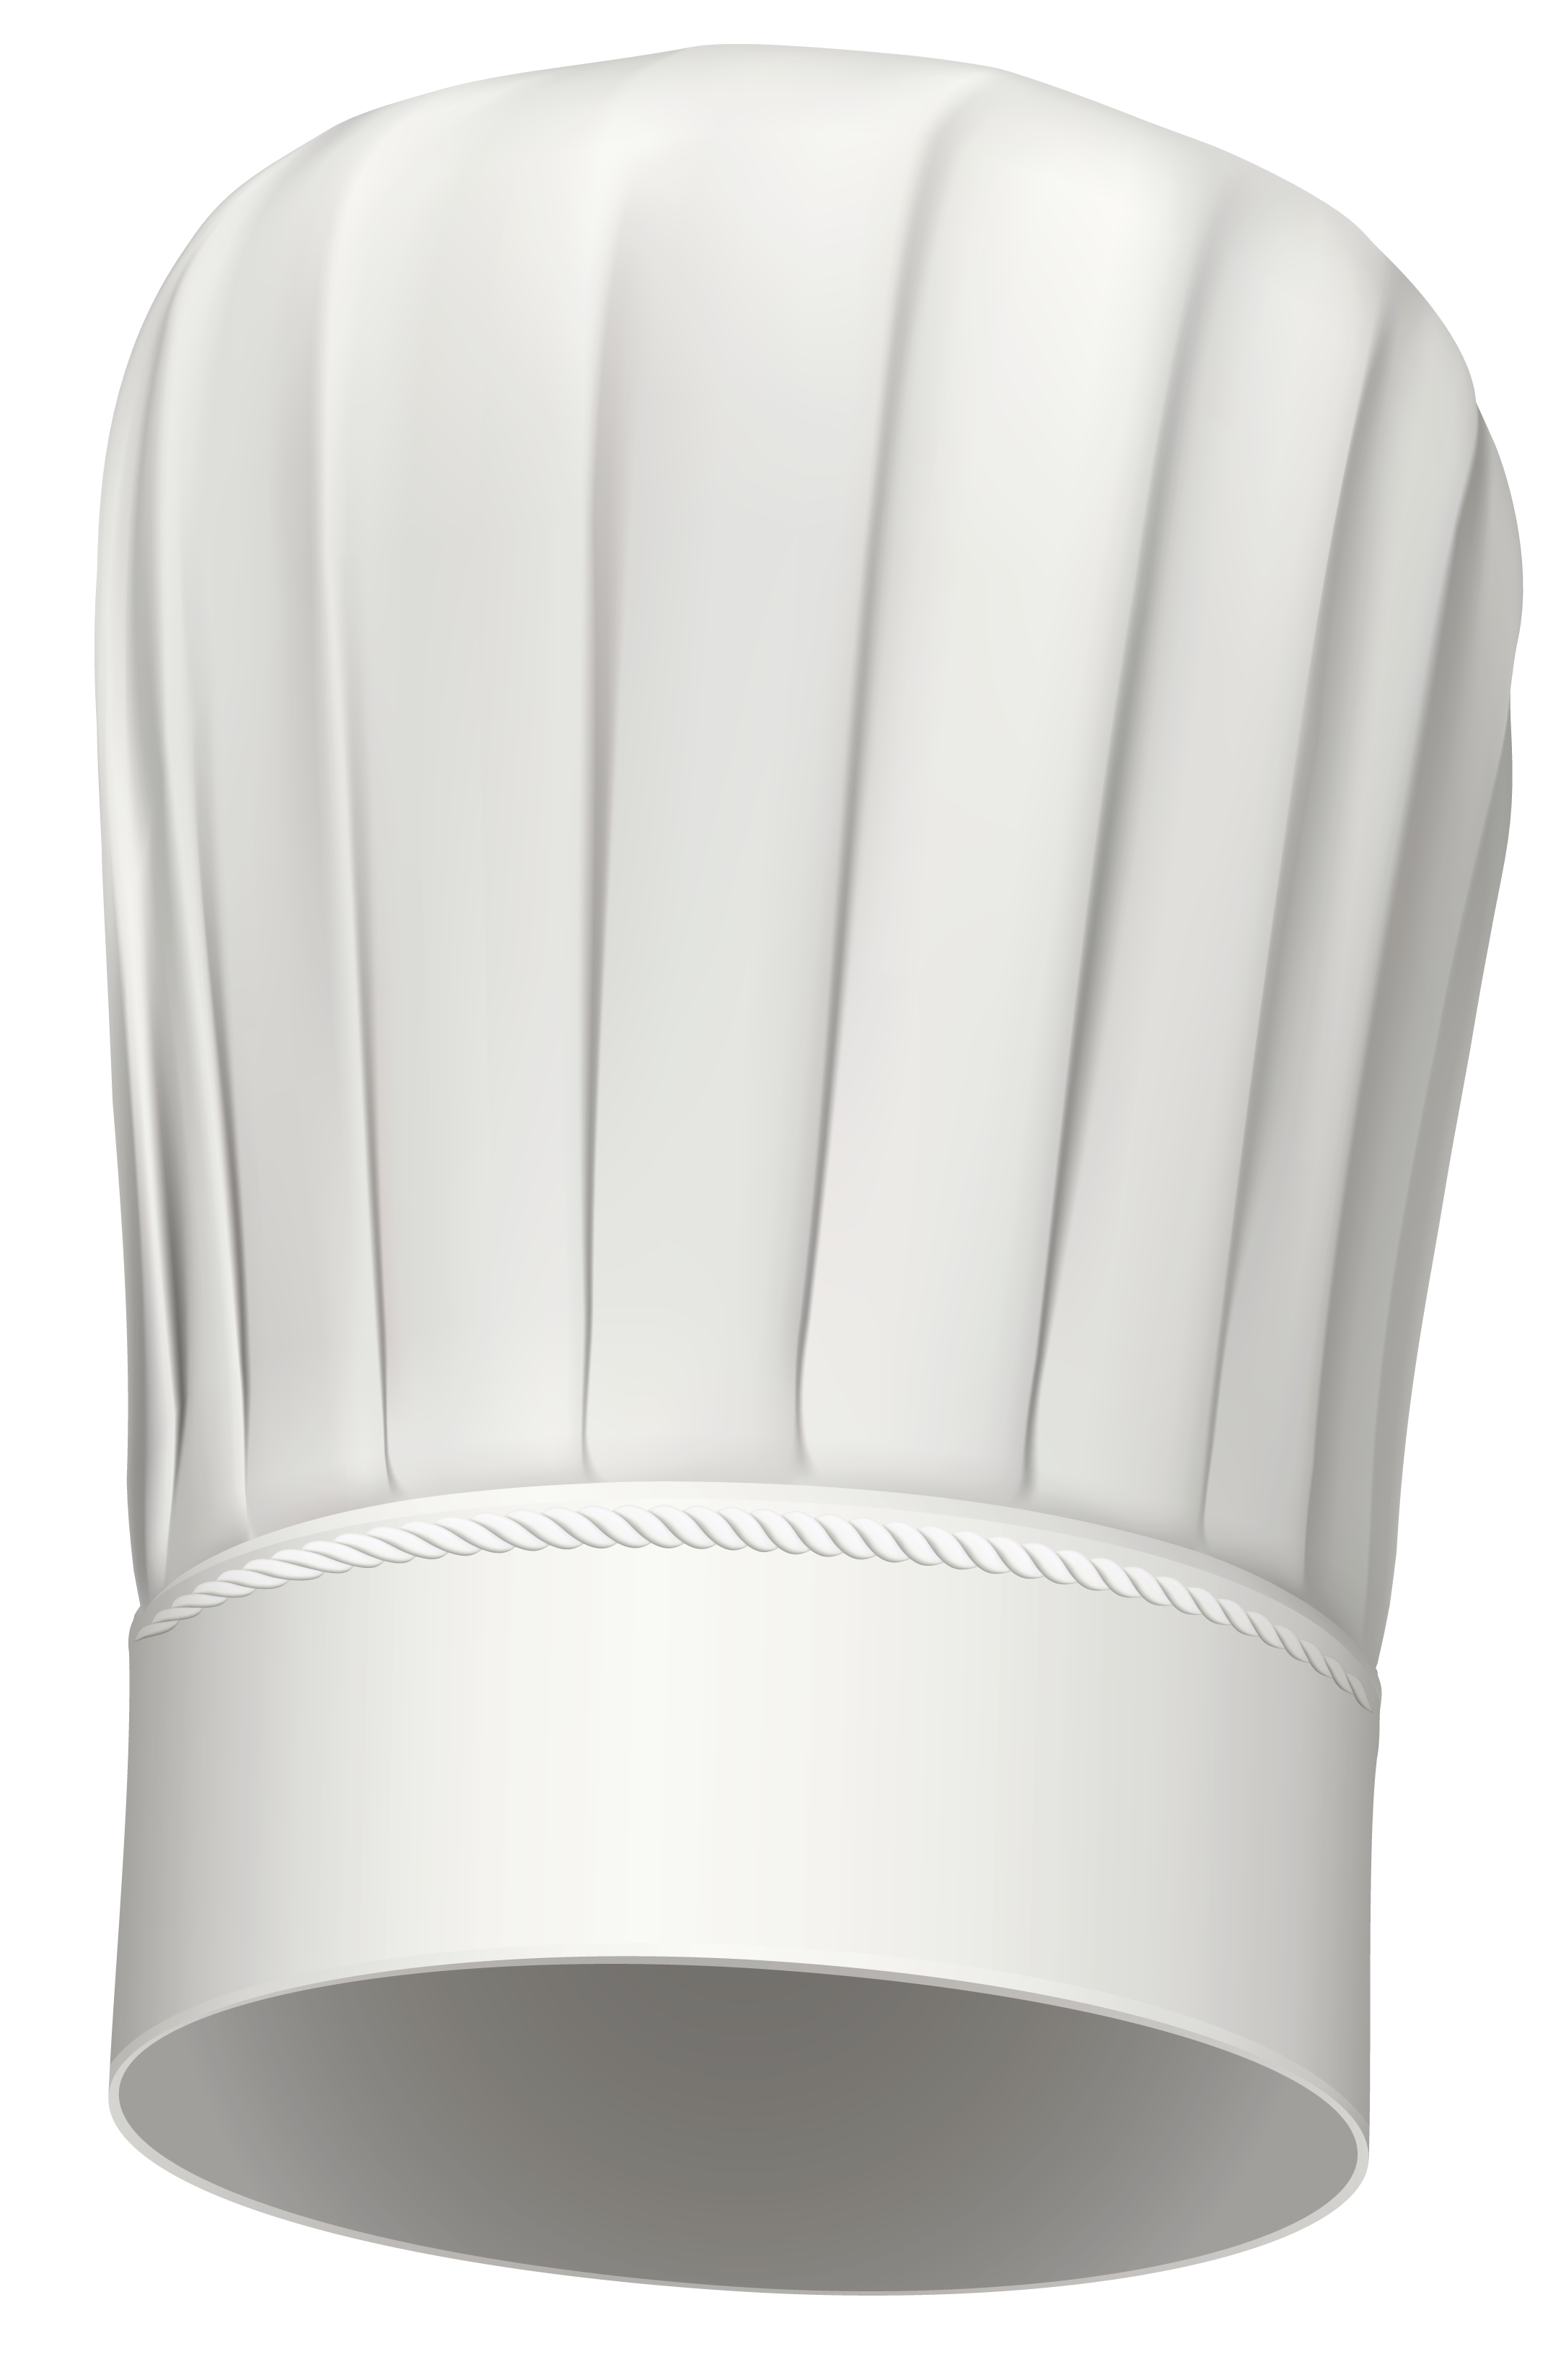 Chef Hat Png #52902.